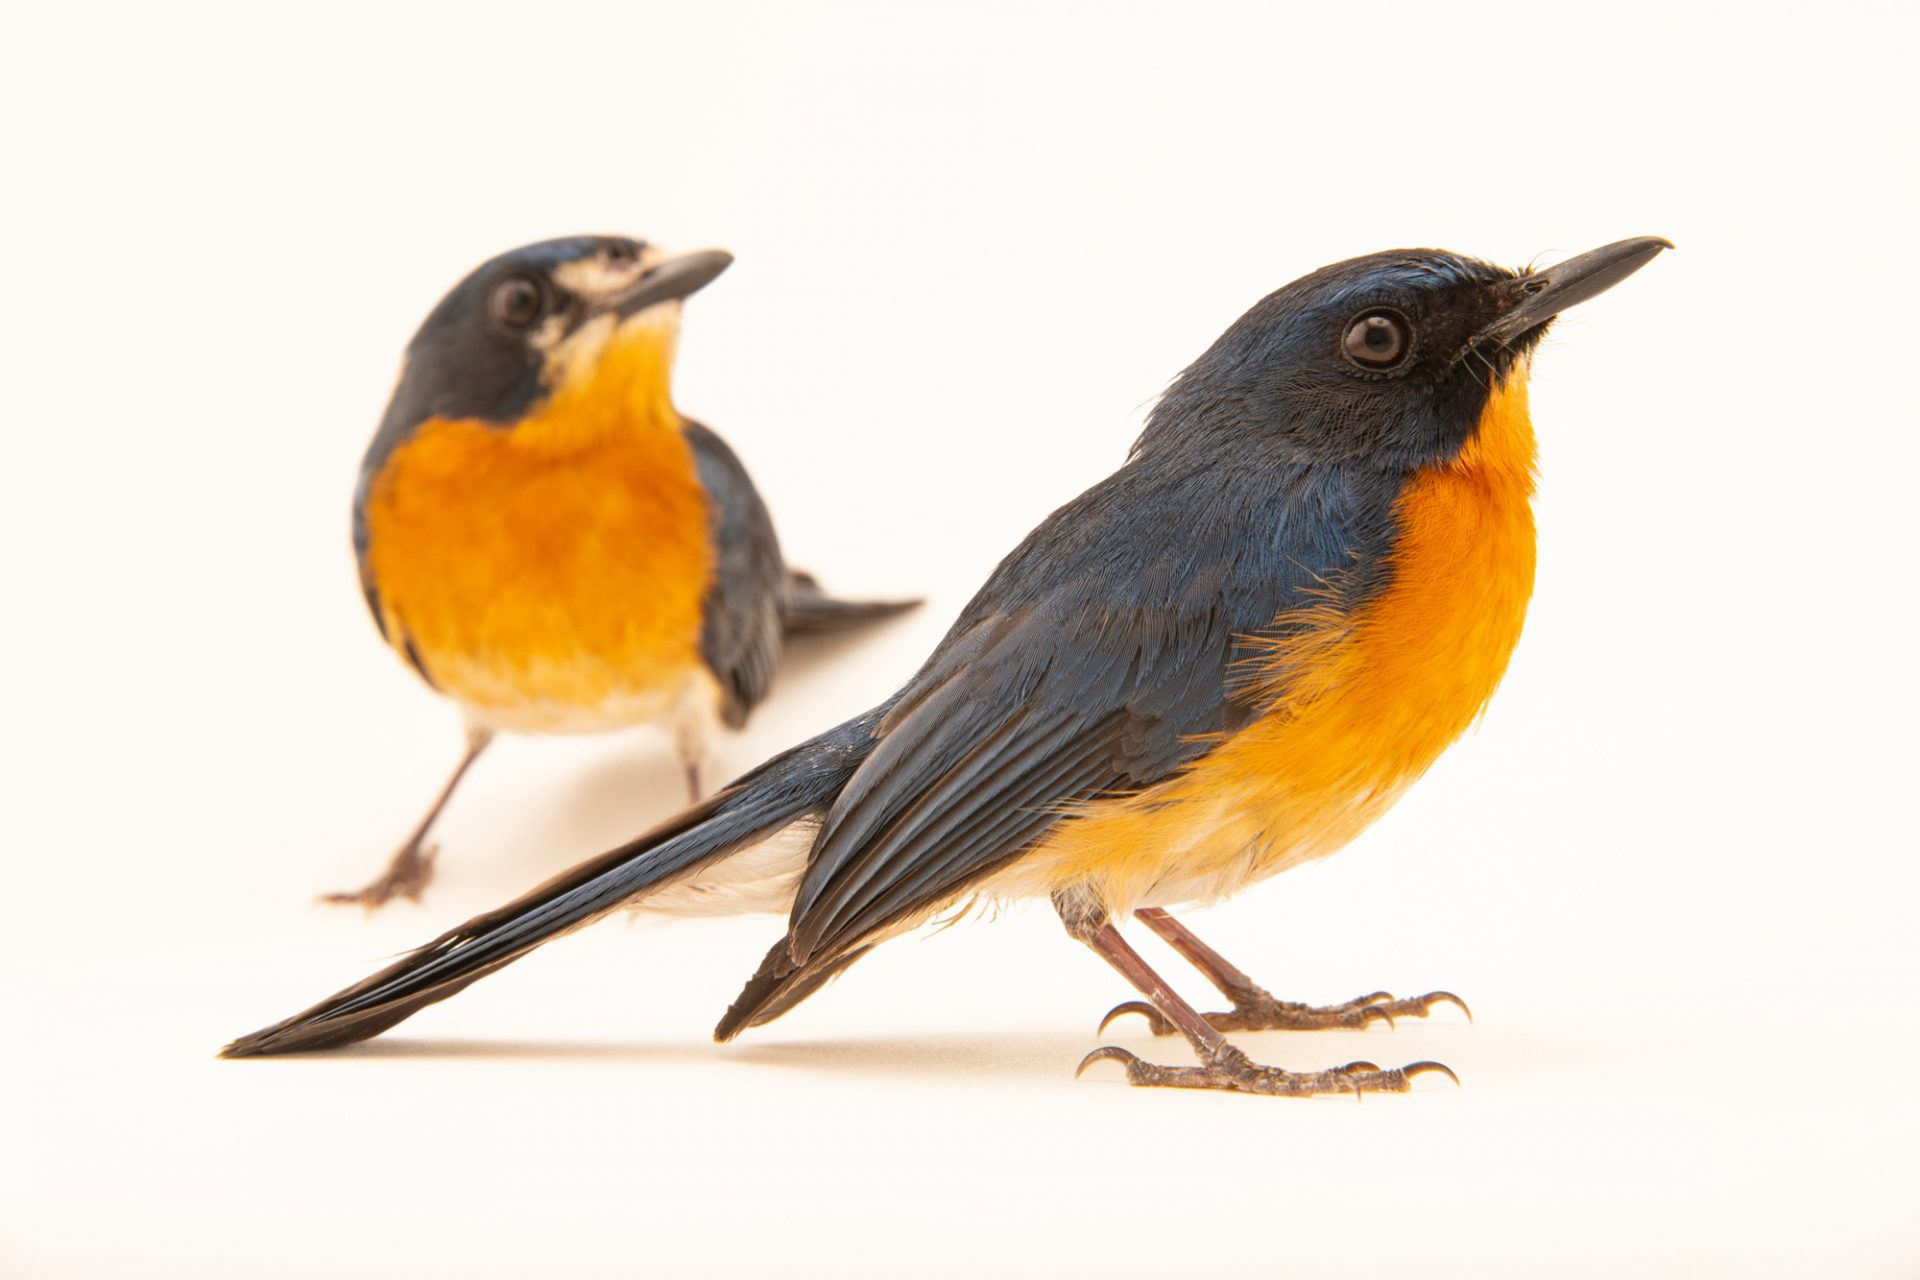 Photo: A male and female mangrove blue flycatcher (Cyornis rufigastra mindorensis) on Semirara Island in the Philippines.